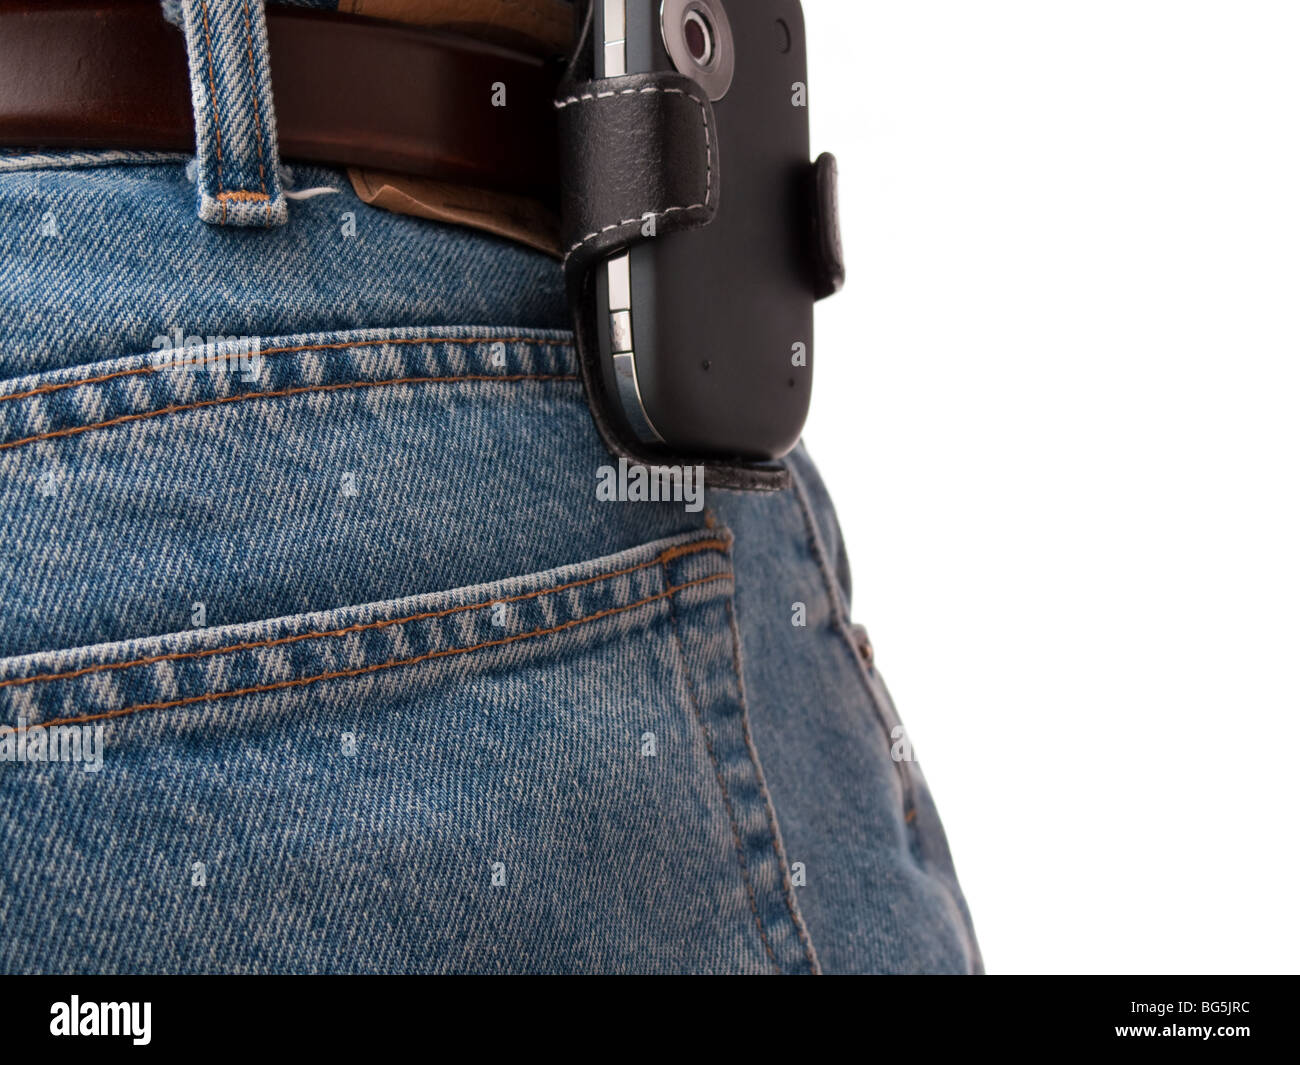 A PDA (Windows Mobile device) in a holster, attached to a belt of an IT worker, wearing jeans, shot from behind. - Stock Image